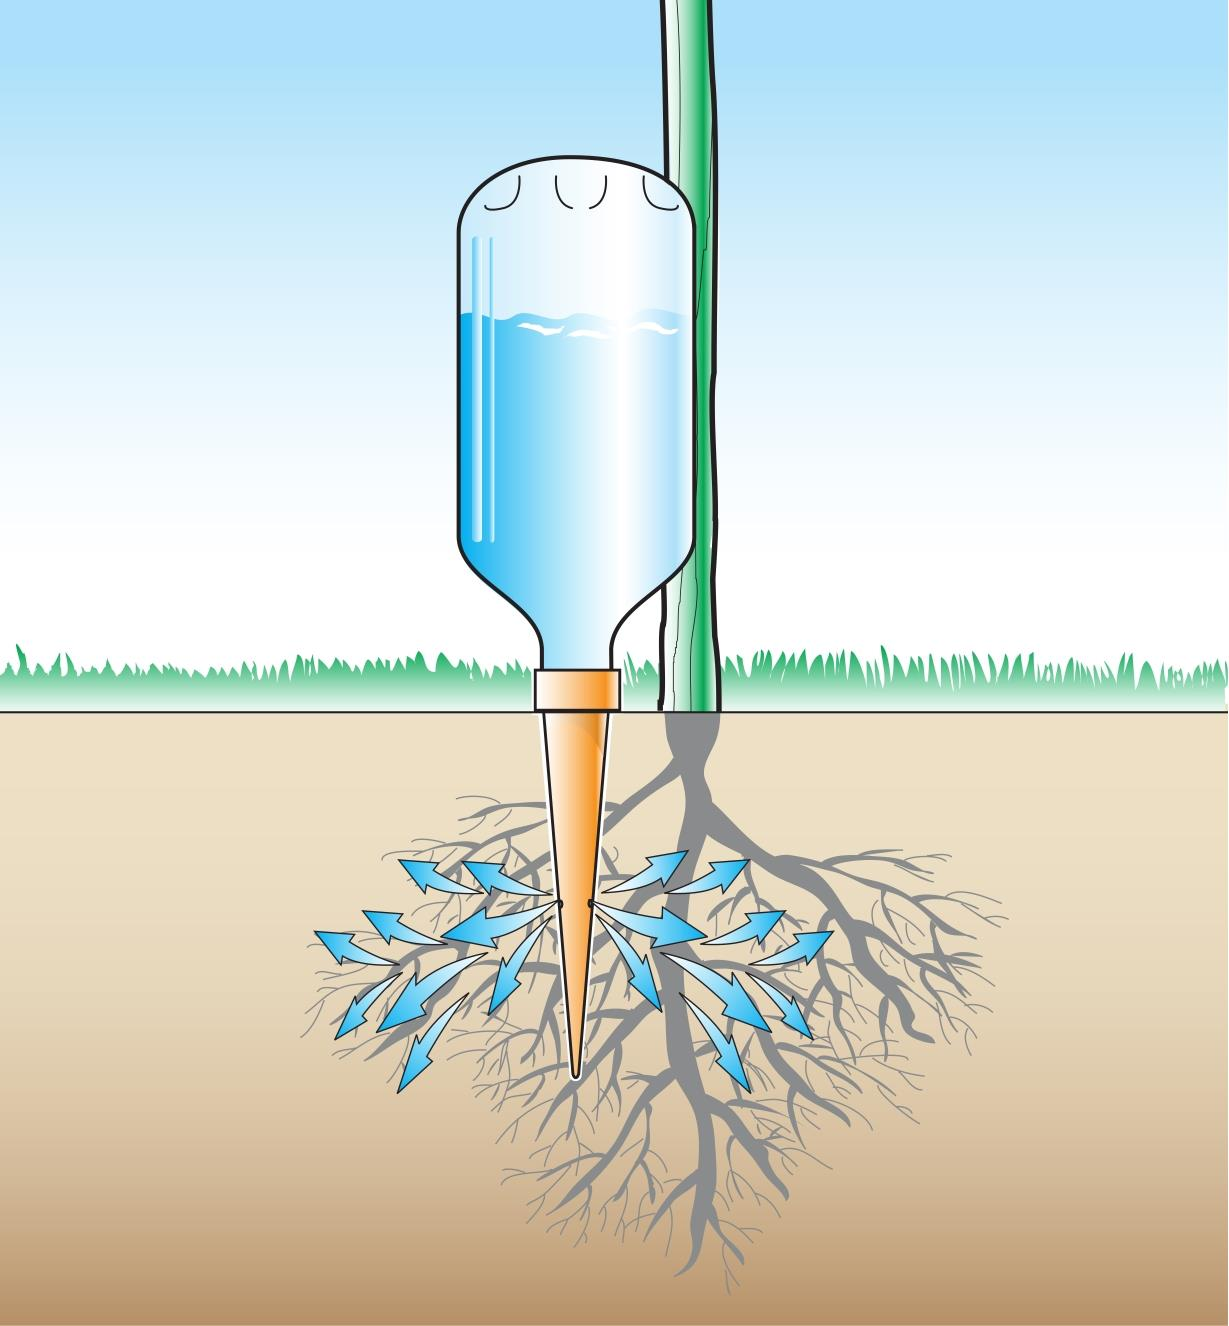 Illustration shows watering spike attached to a bottle, inserted in soil, with arrow indicating water flowing to roots